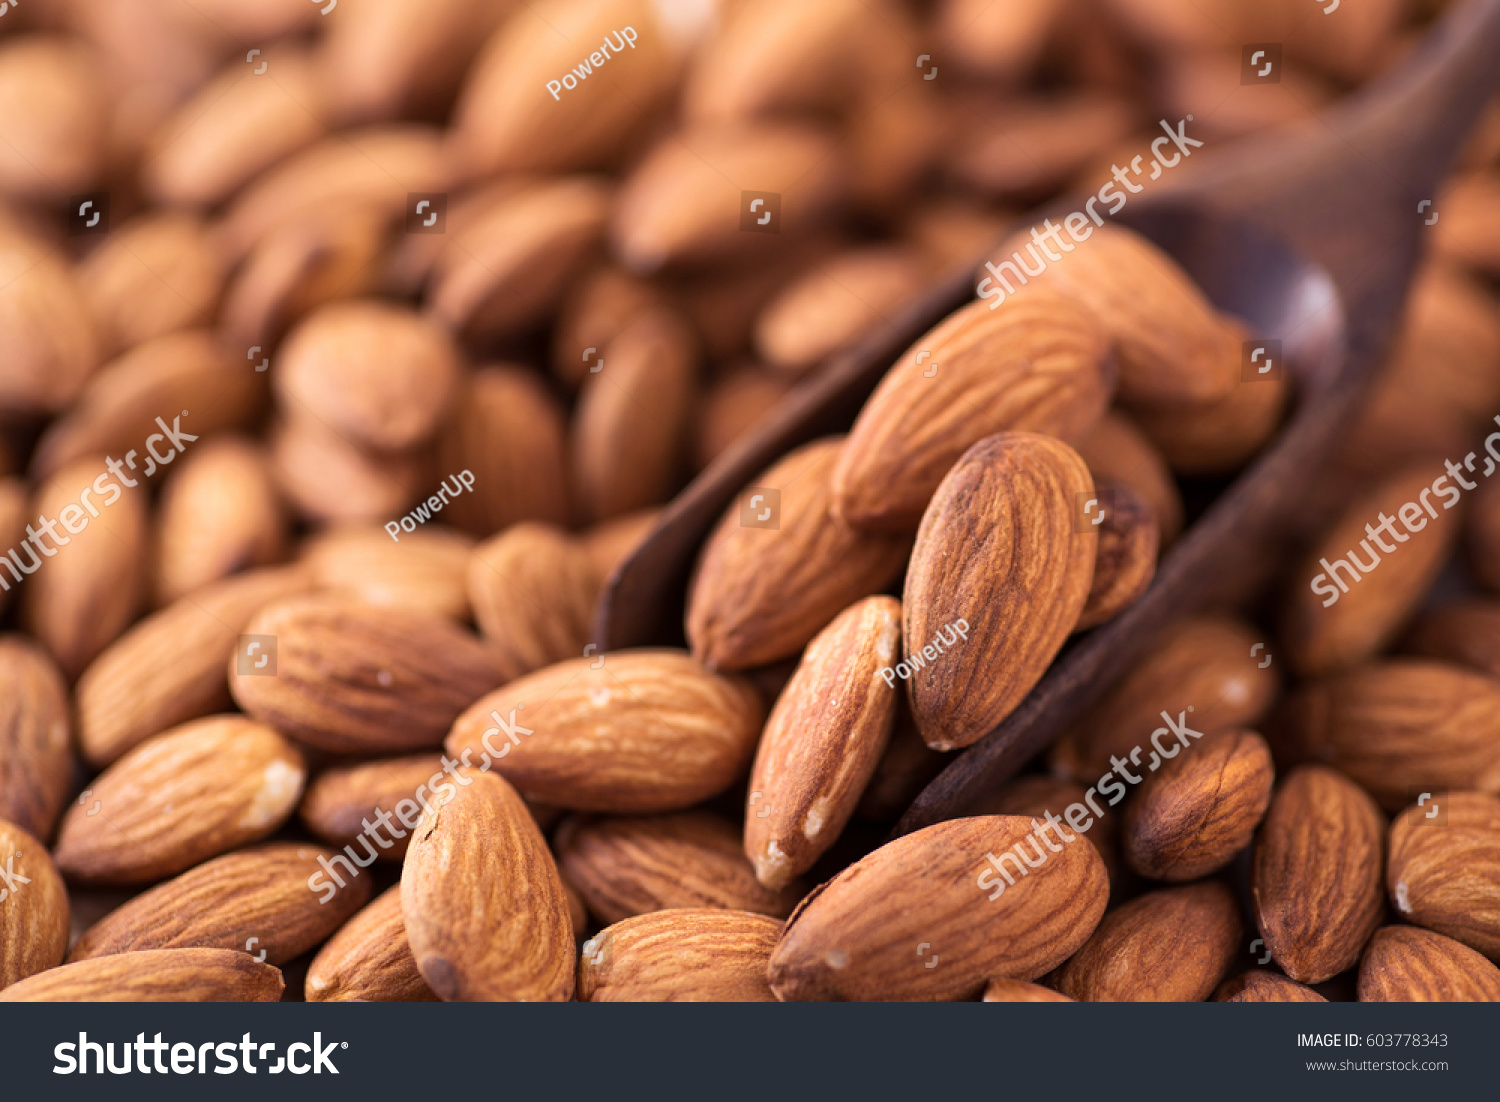 Whole Natural Almonds Food For Less